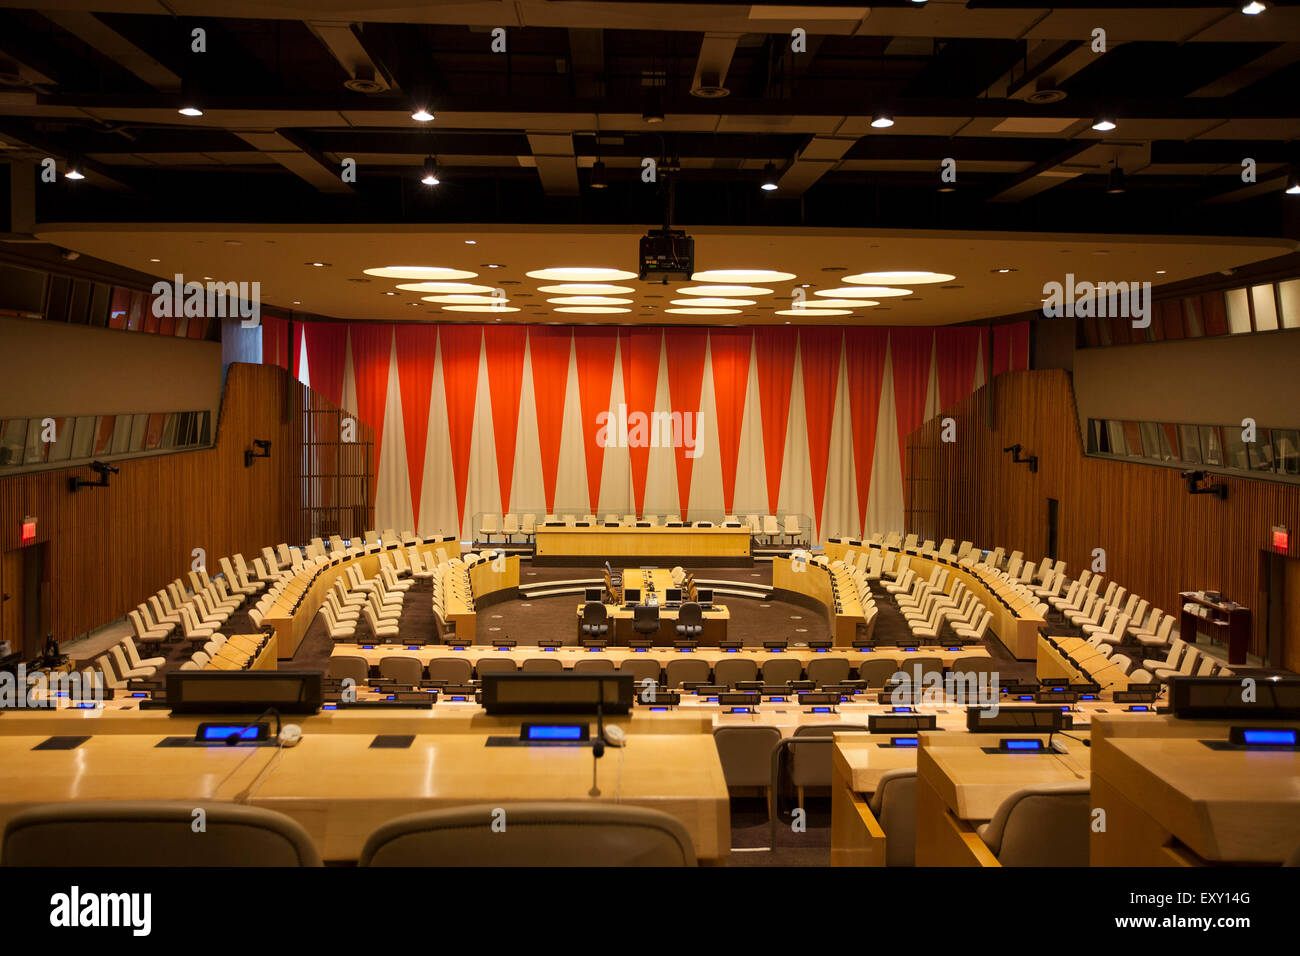 NEW YORK - May 27, 2015: The room of the United Nations Economic and Social Council. UN headquarters, New York Stock Photo